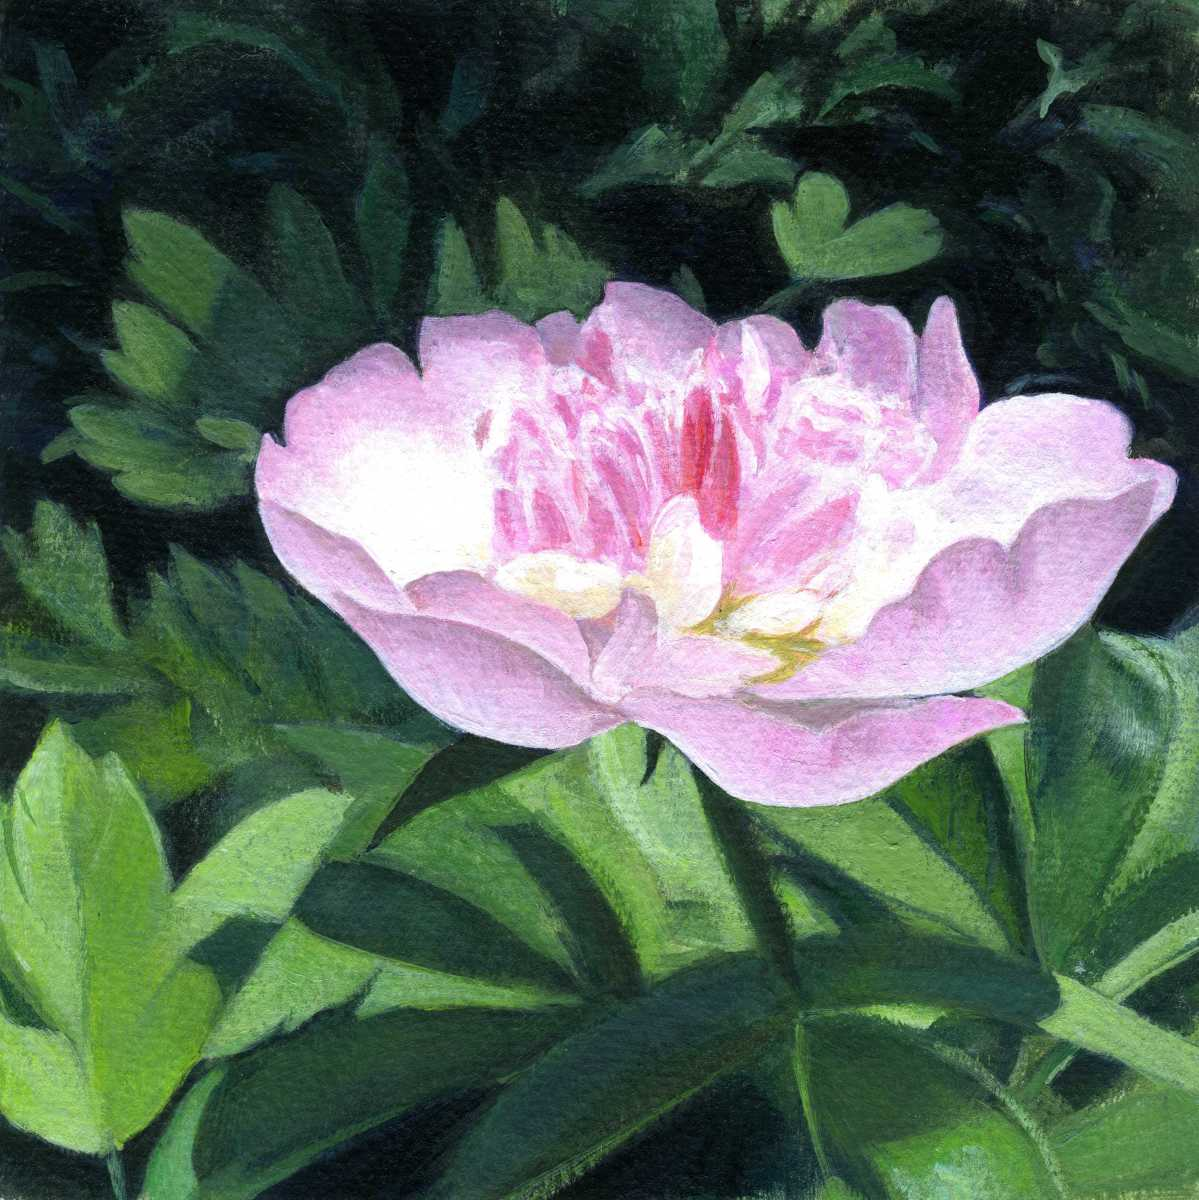 Pink Confection - Peony (large view)